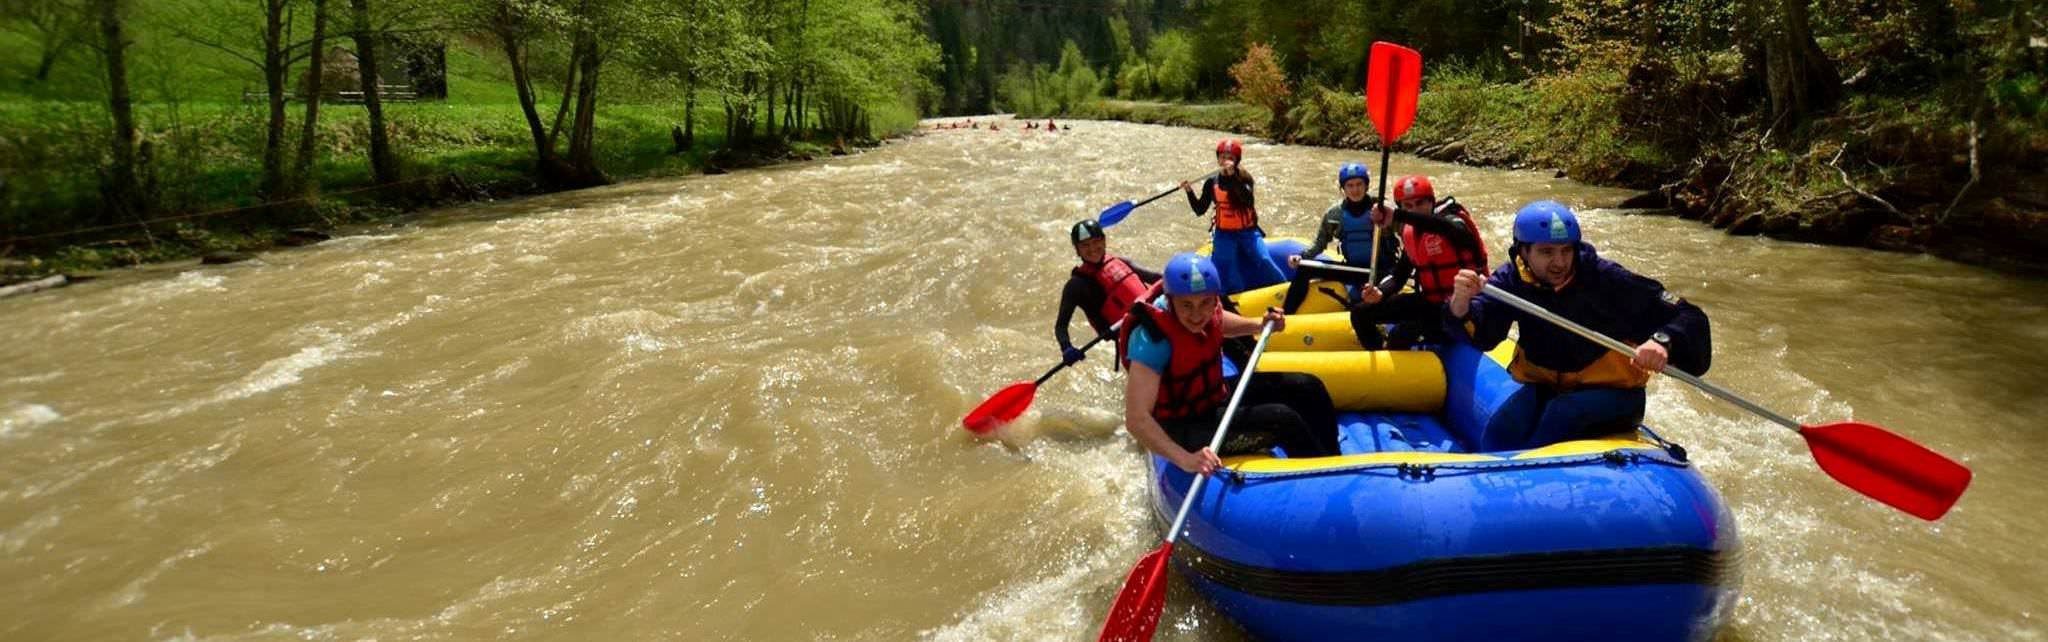 white water rafting and kayaking in Ukraine